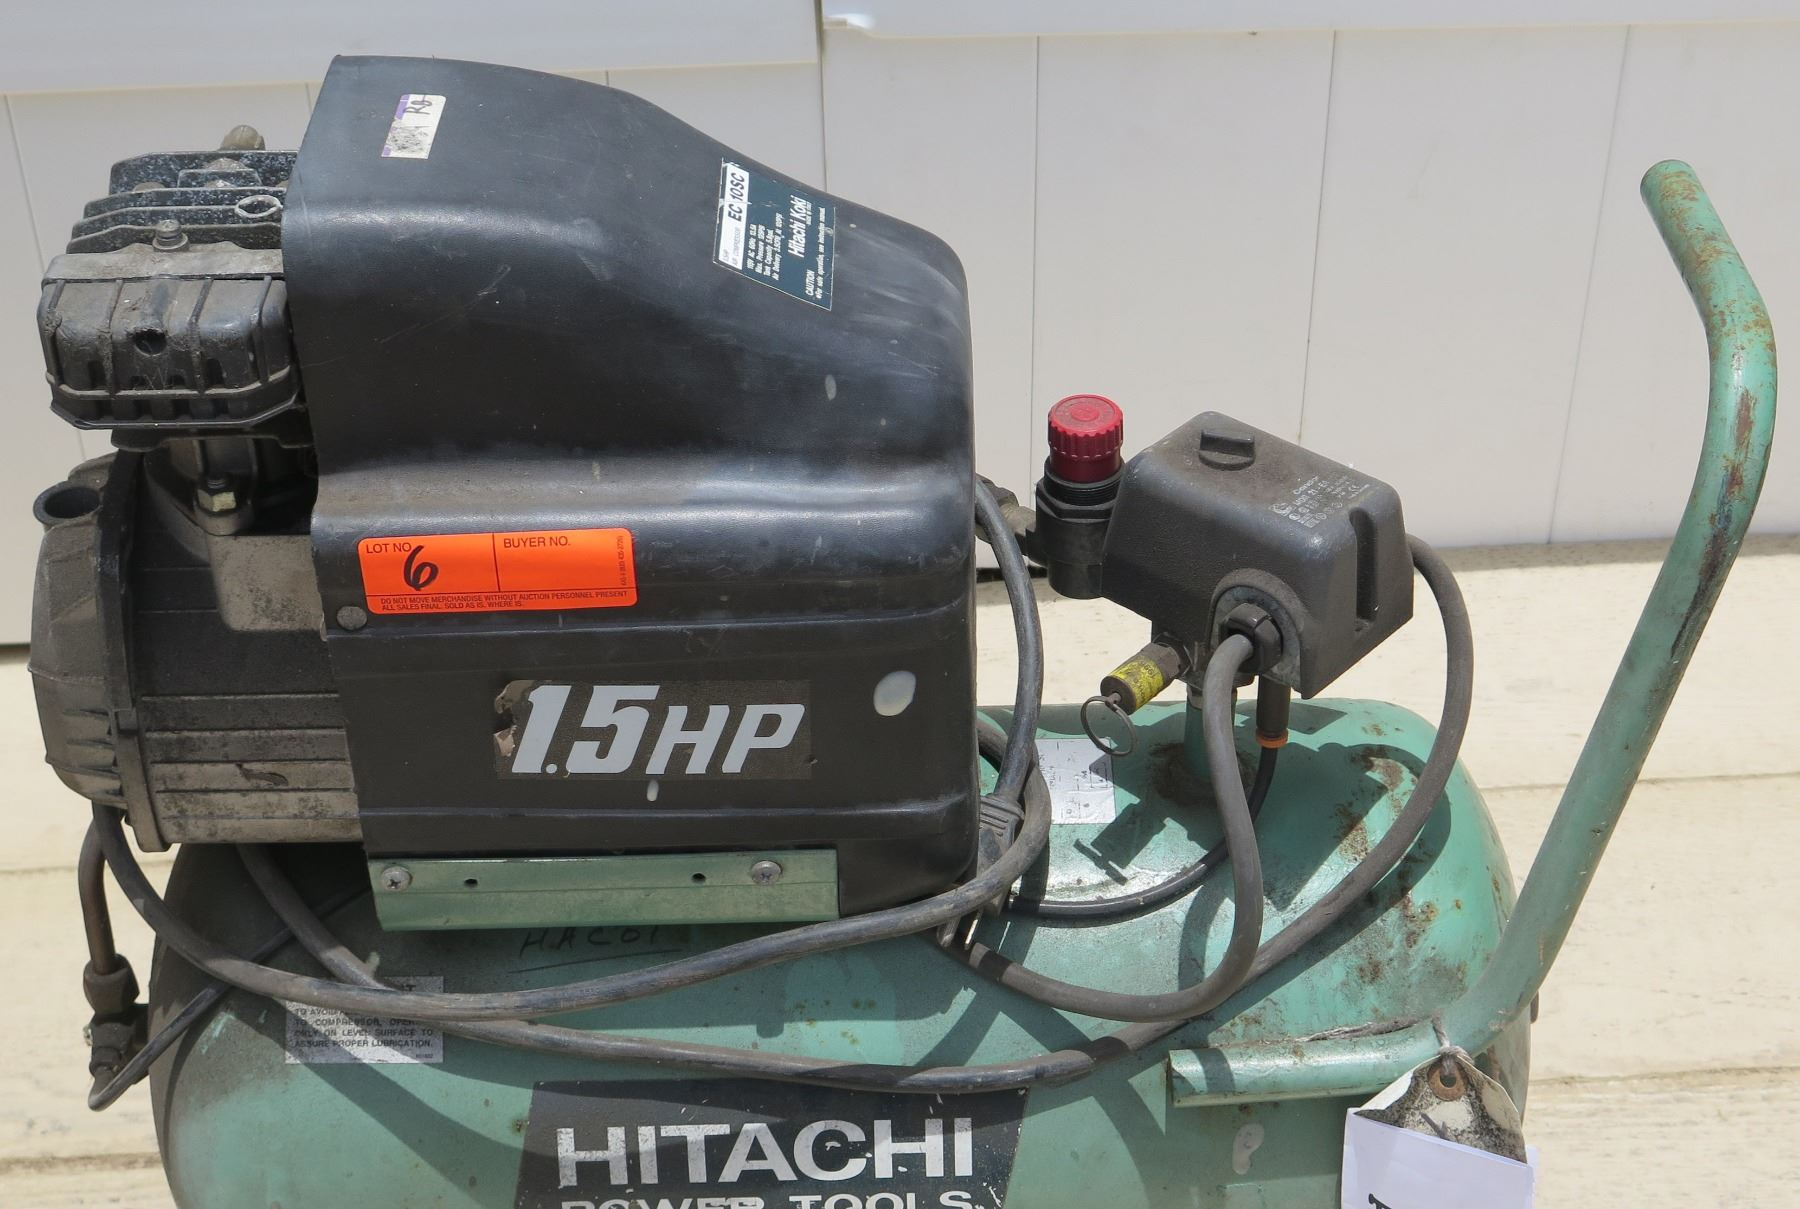 medium resolution of  image 2 tools hitachi koki ec 10sc and stanley bostitch cwc156 1 5 hp air